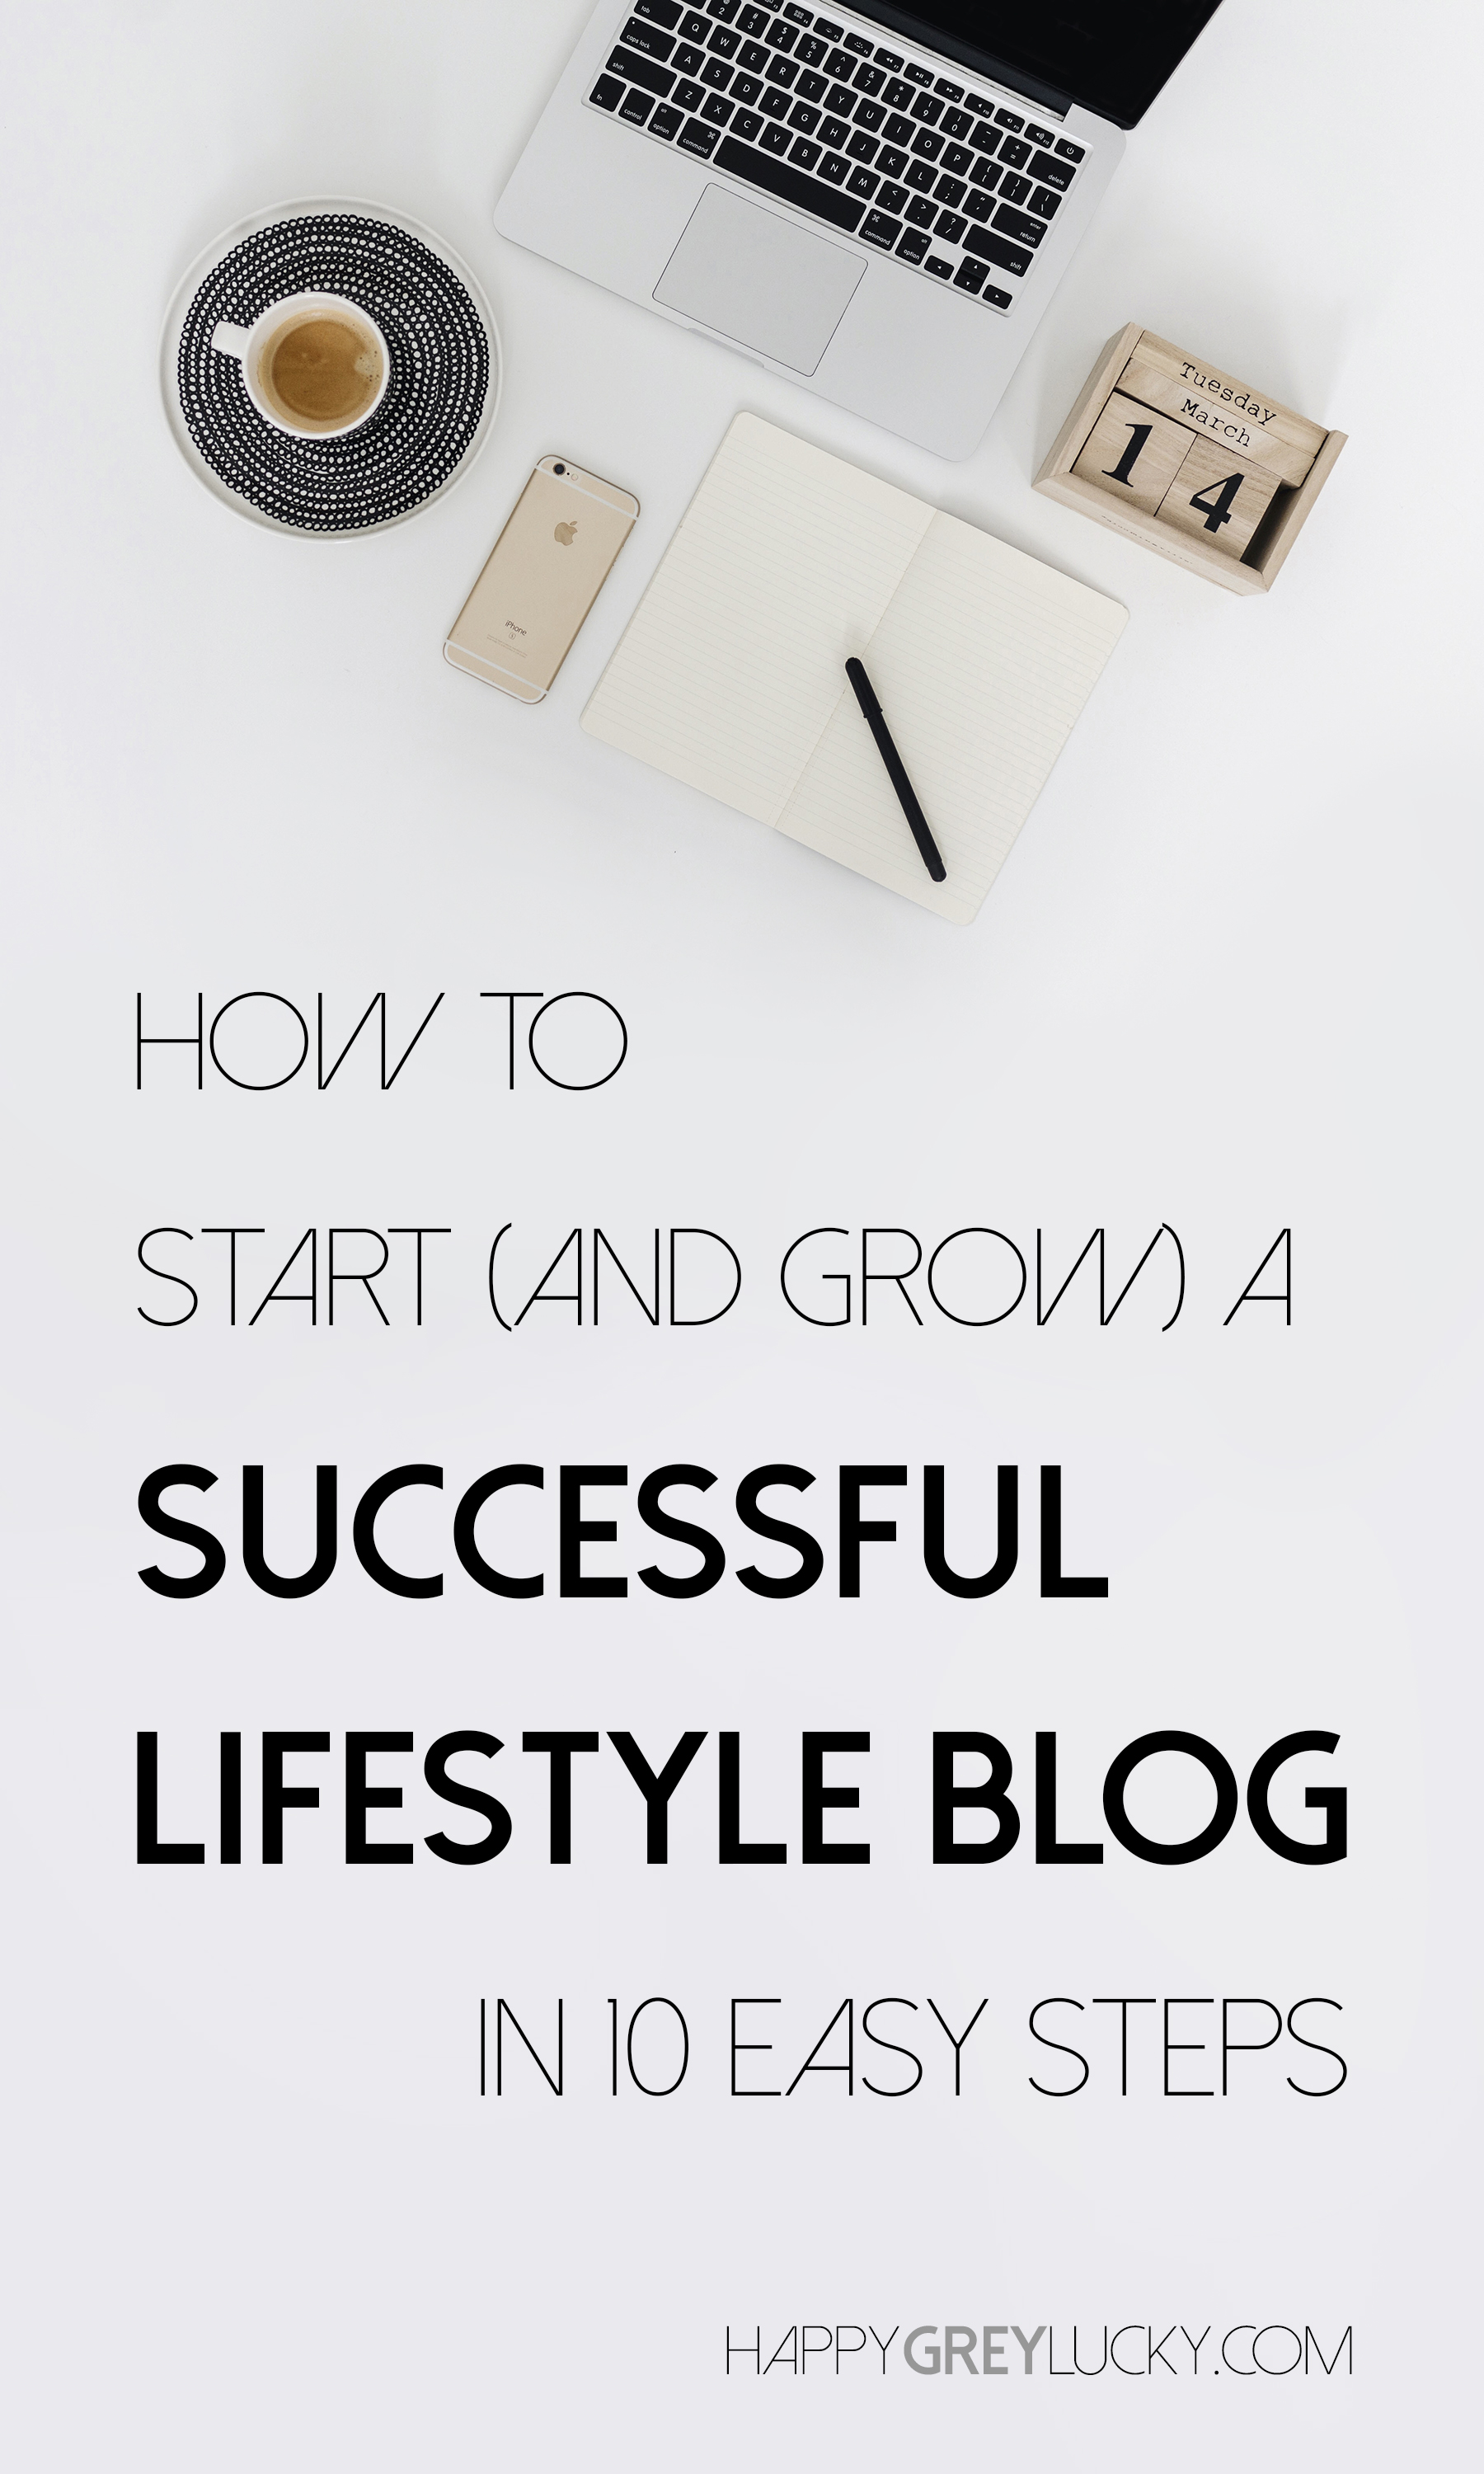 How to start and grow a successful lifestyle blog in 10 steps | Happy Grey Lucky